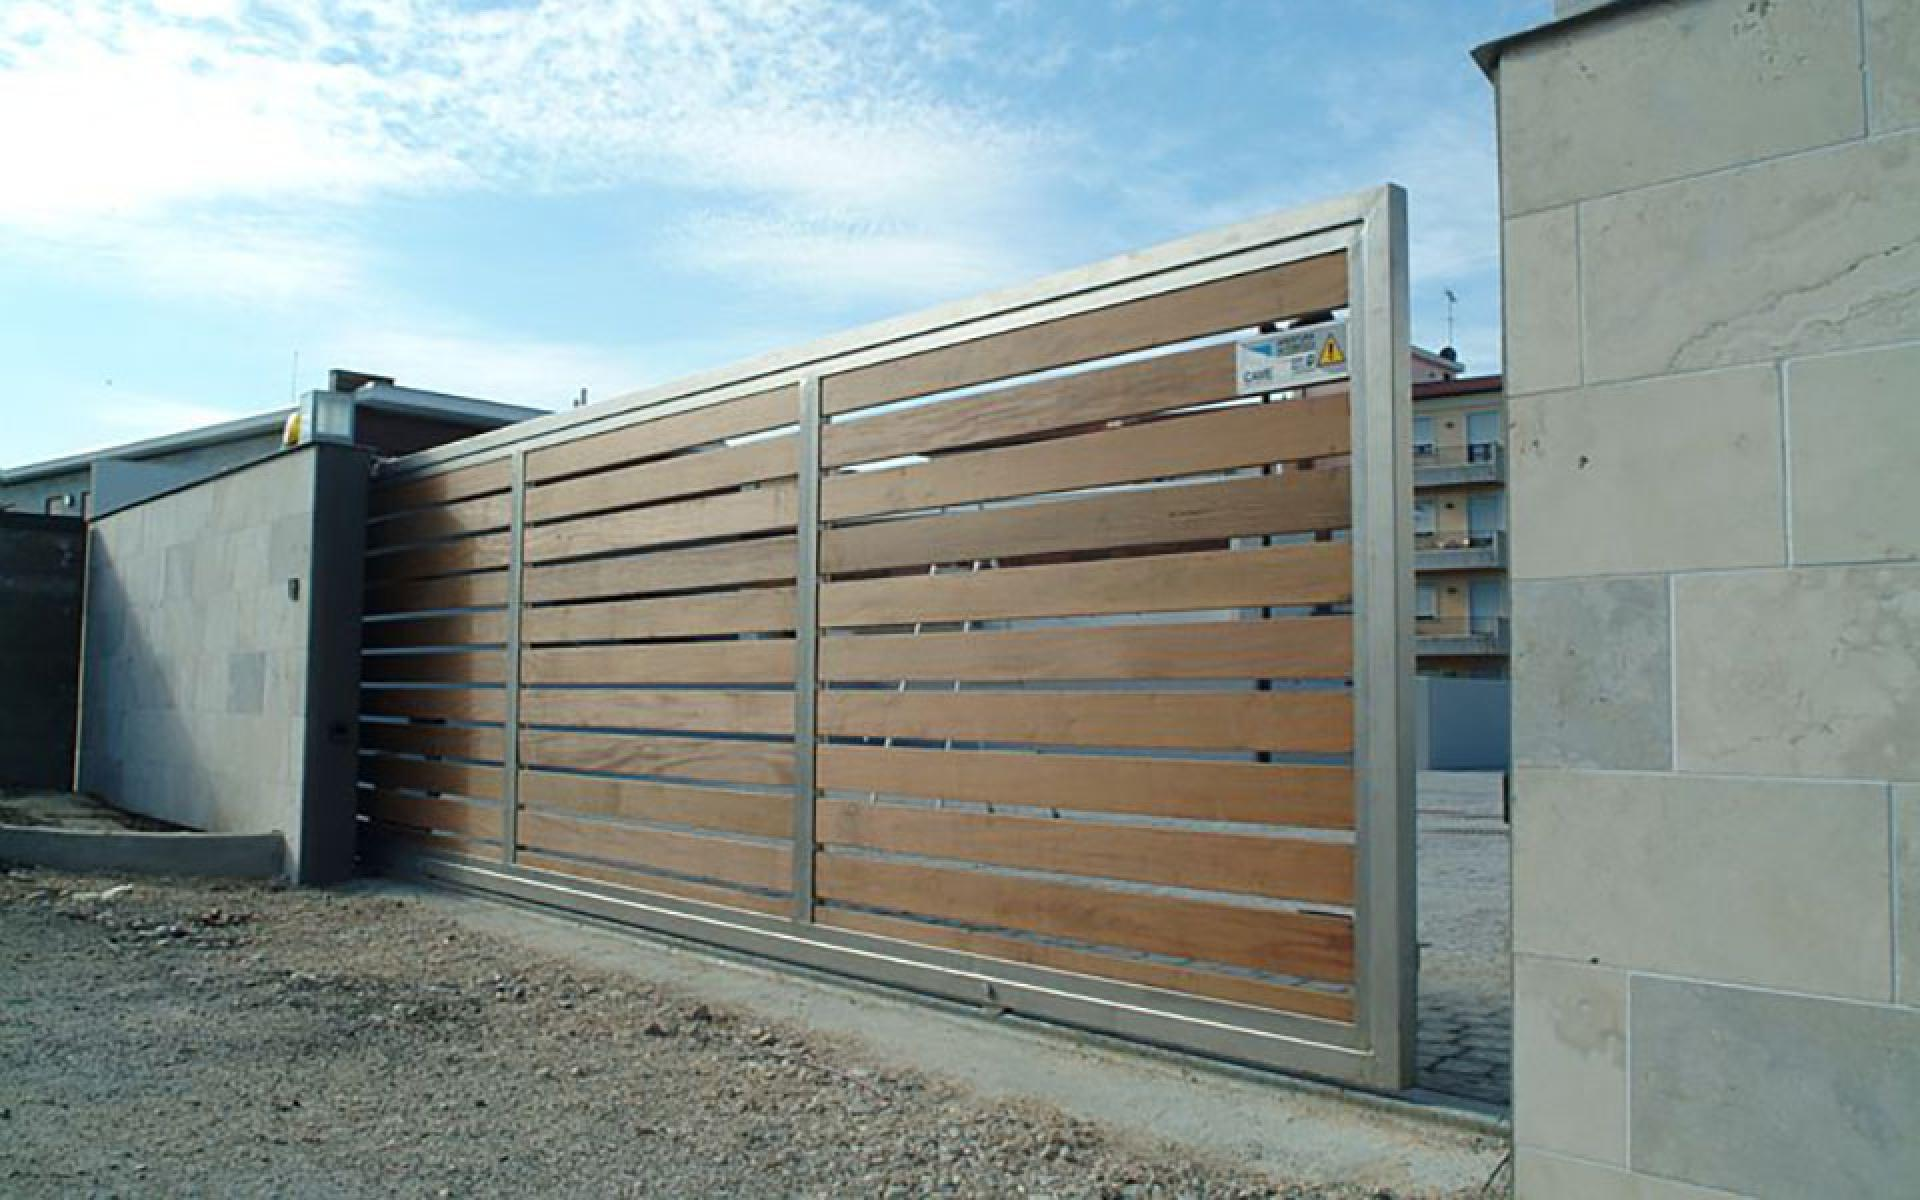 Sliding gate with CAME Bx automation